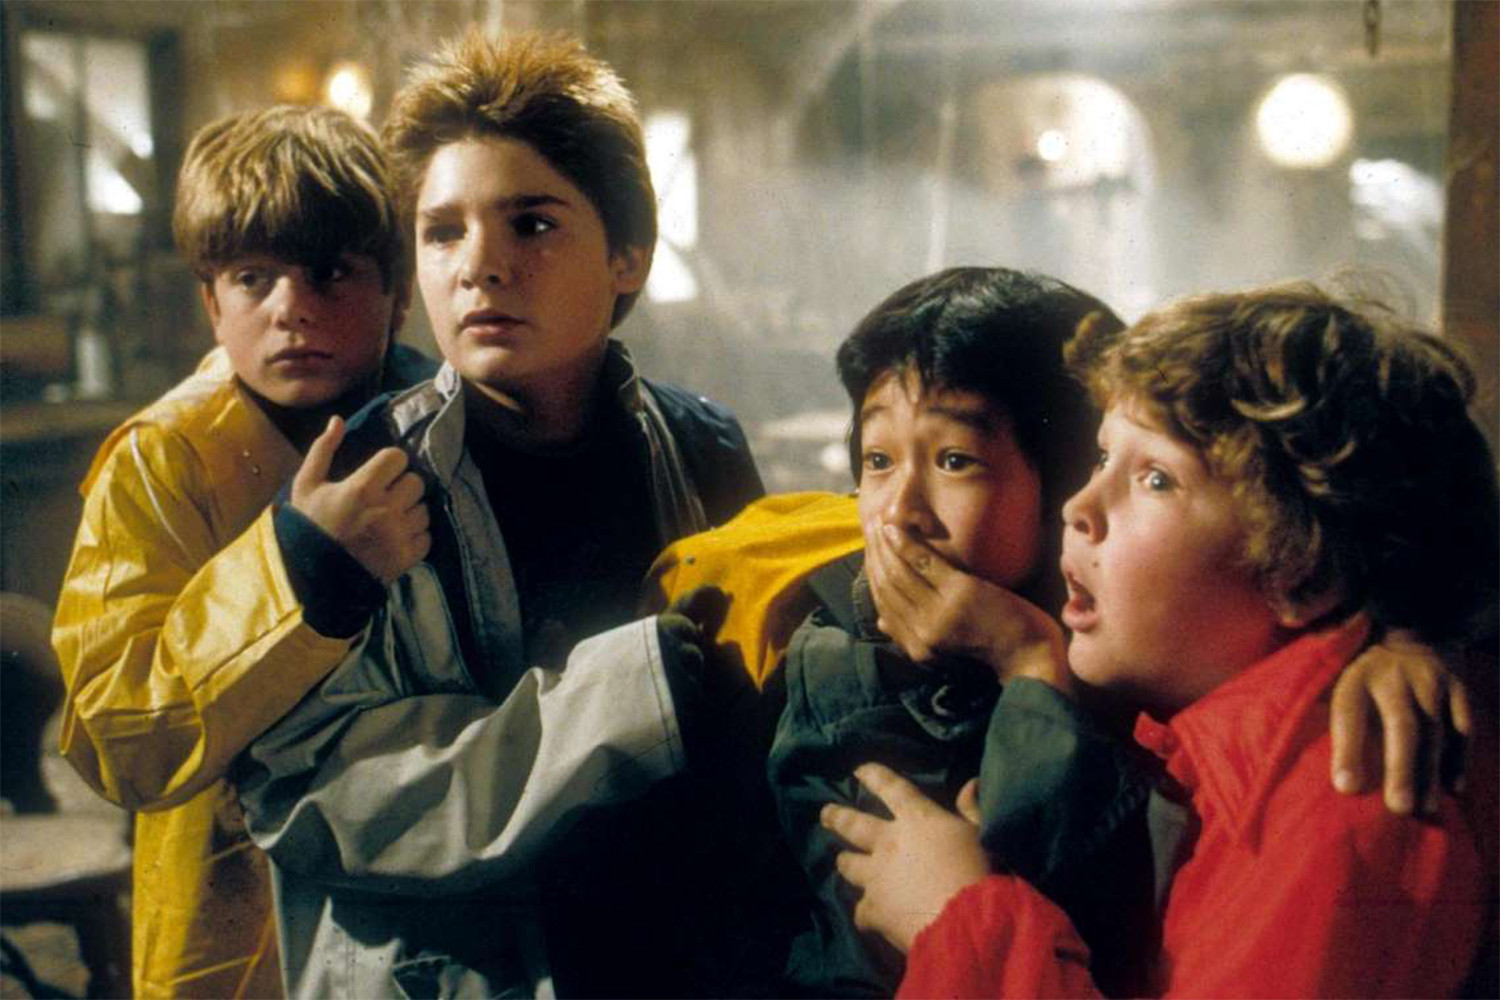 Taking inspiration from the 1985 film <i>The Goonies</i>, this Fox pilot has a central mystery of its own. (Photo: Warner Bros.)